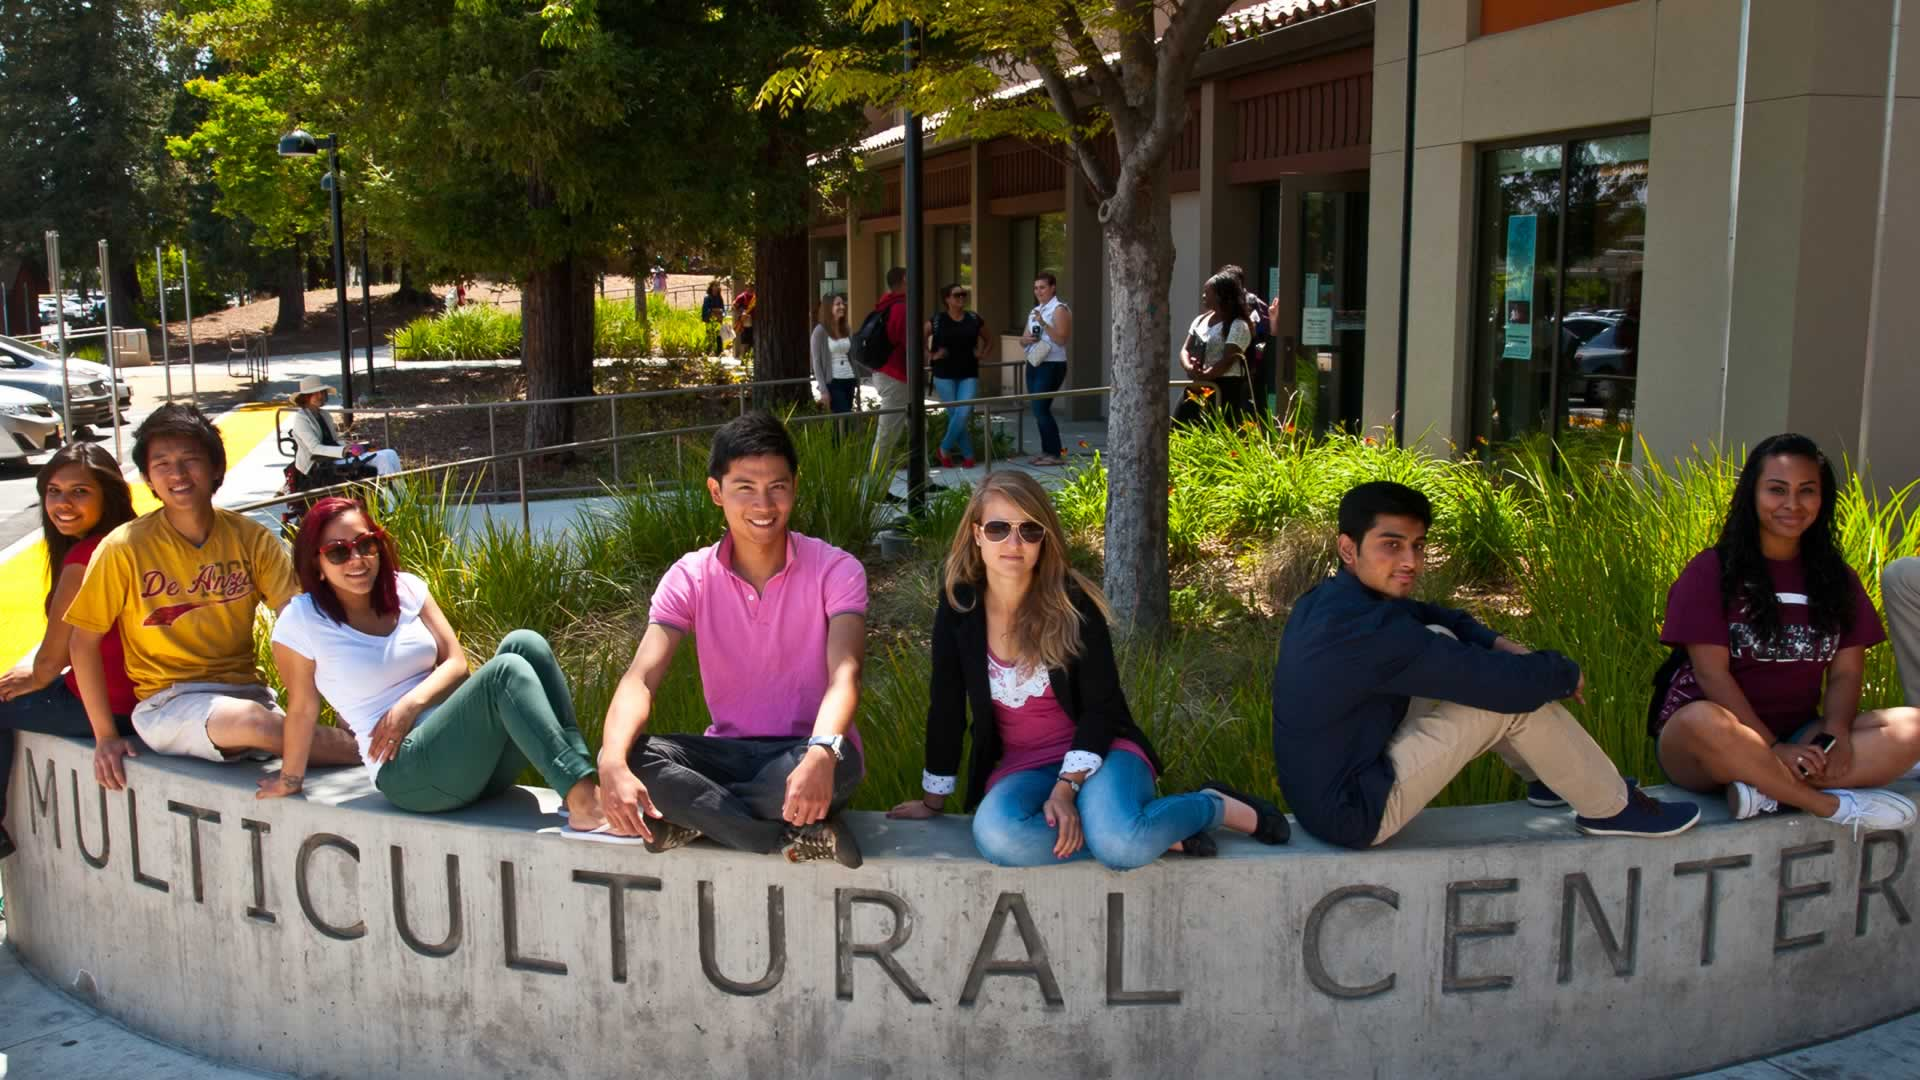 Students on the Multicultural Center sign